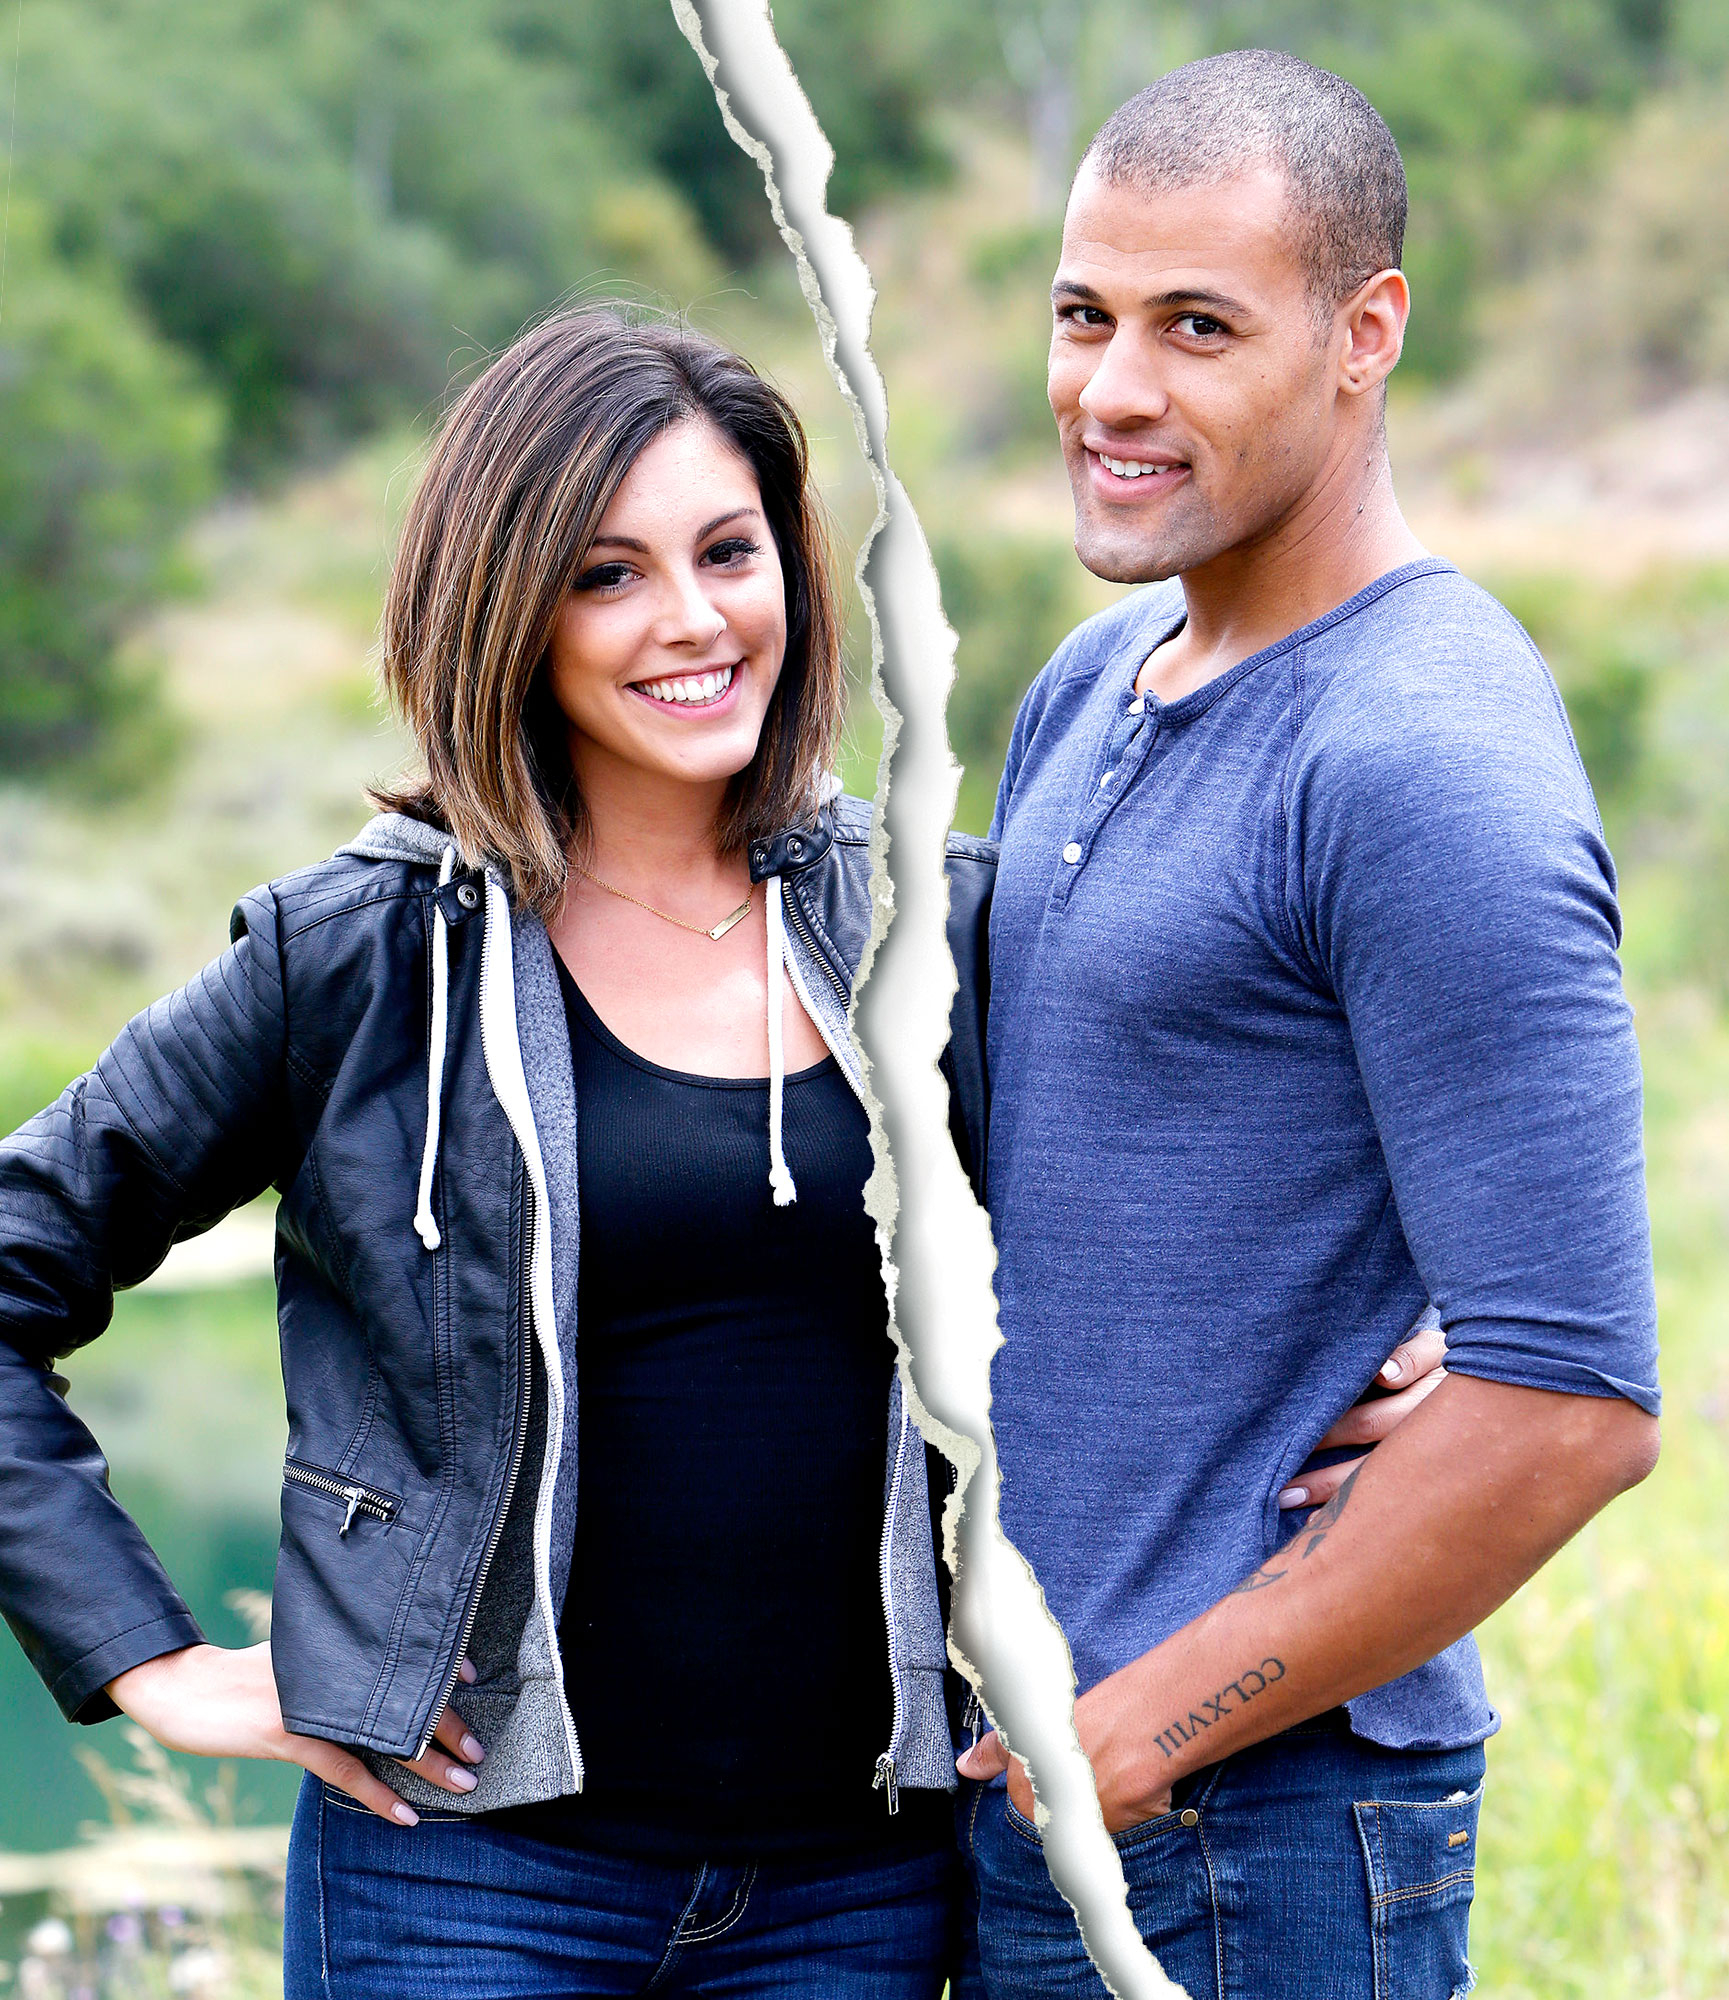 Bachelor In Paradise Couple Lace Morris Grant Kemp Split